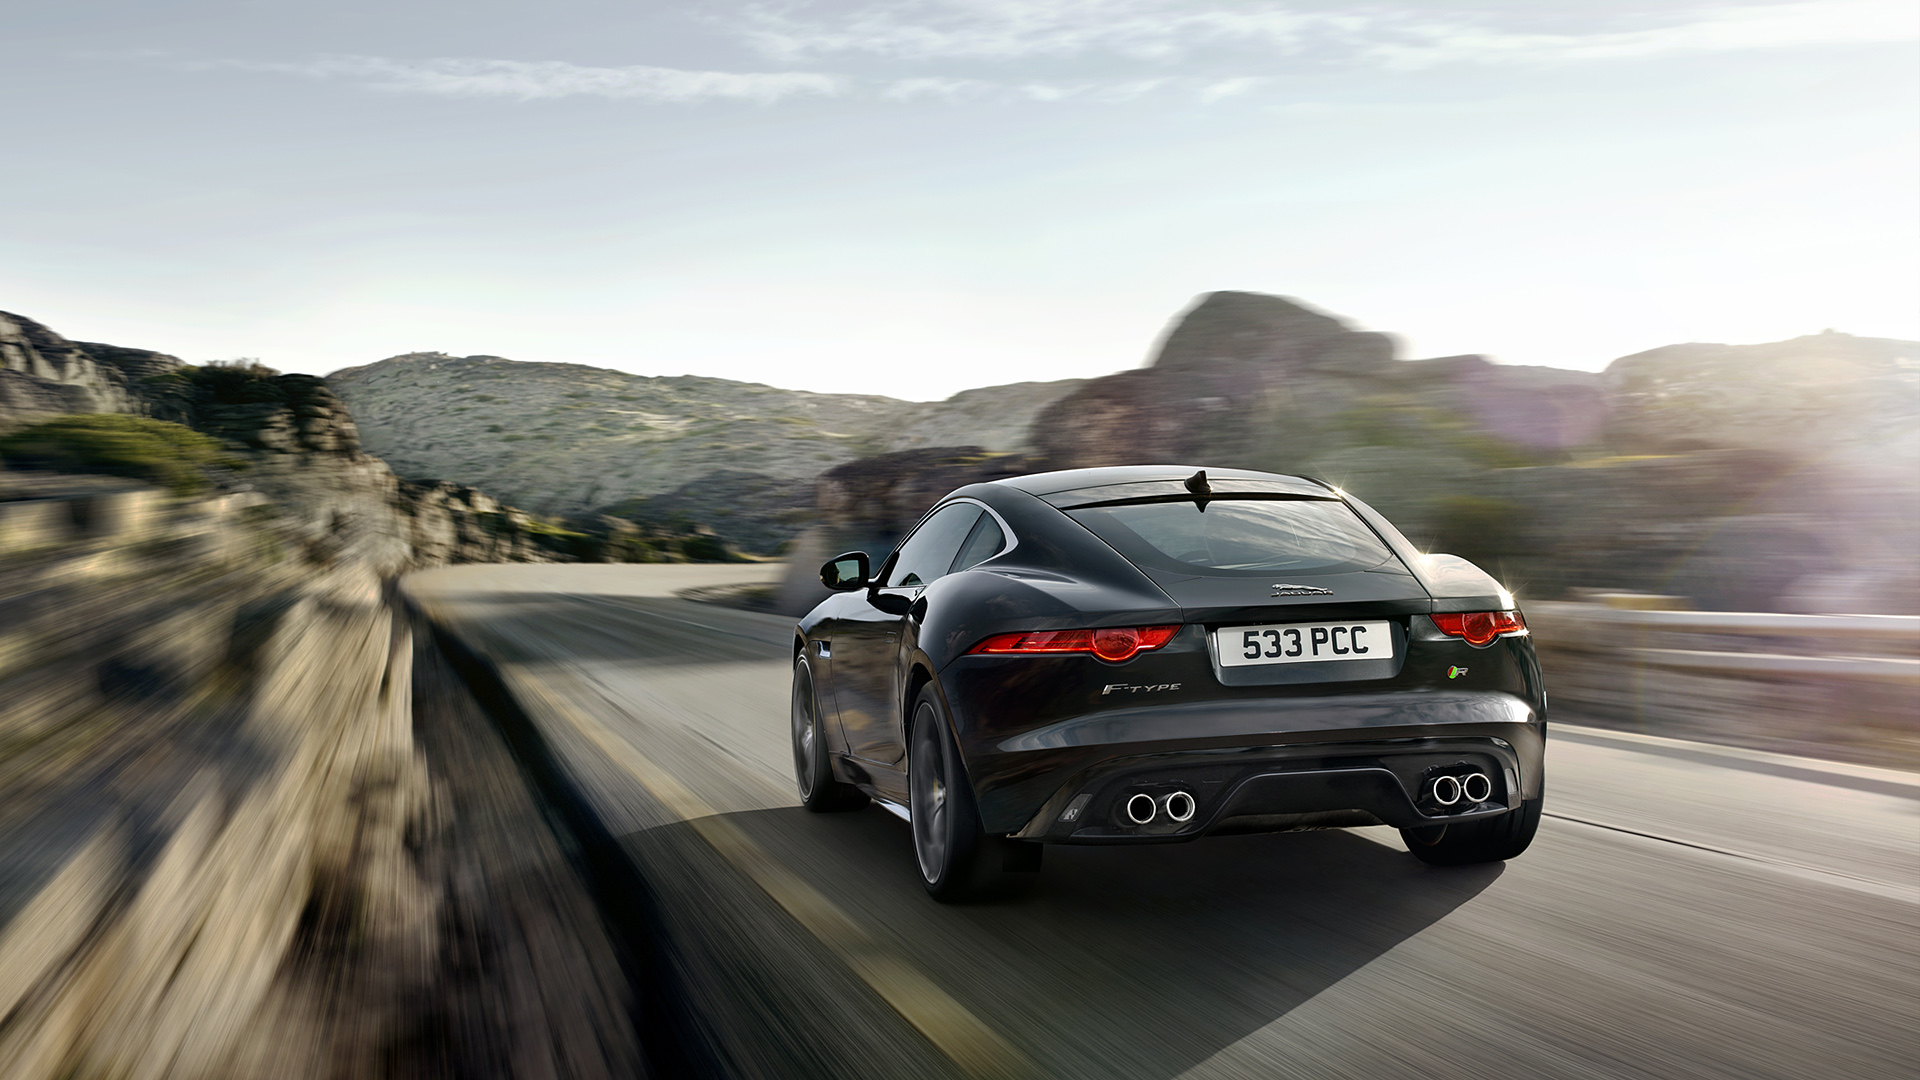 2015 Jaguar F Type R Coupe Rear Wallpaper   HD 1920x1080